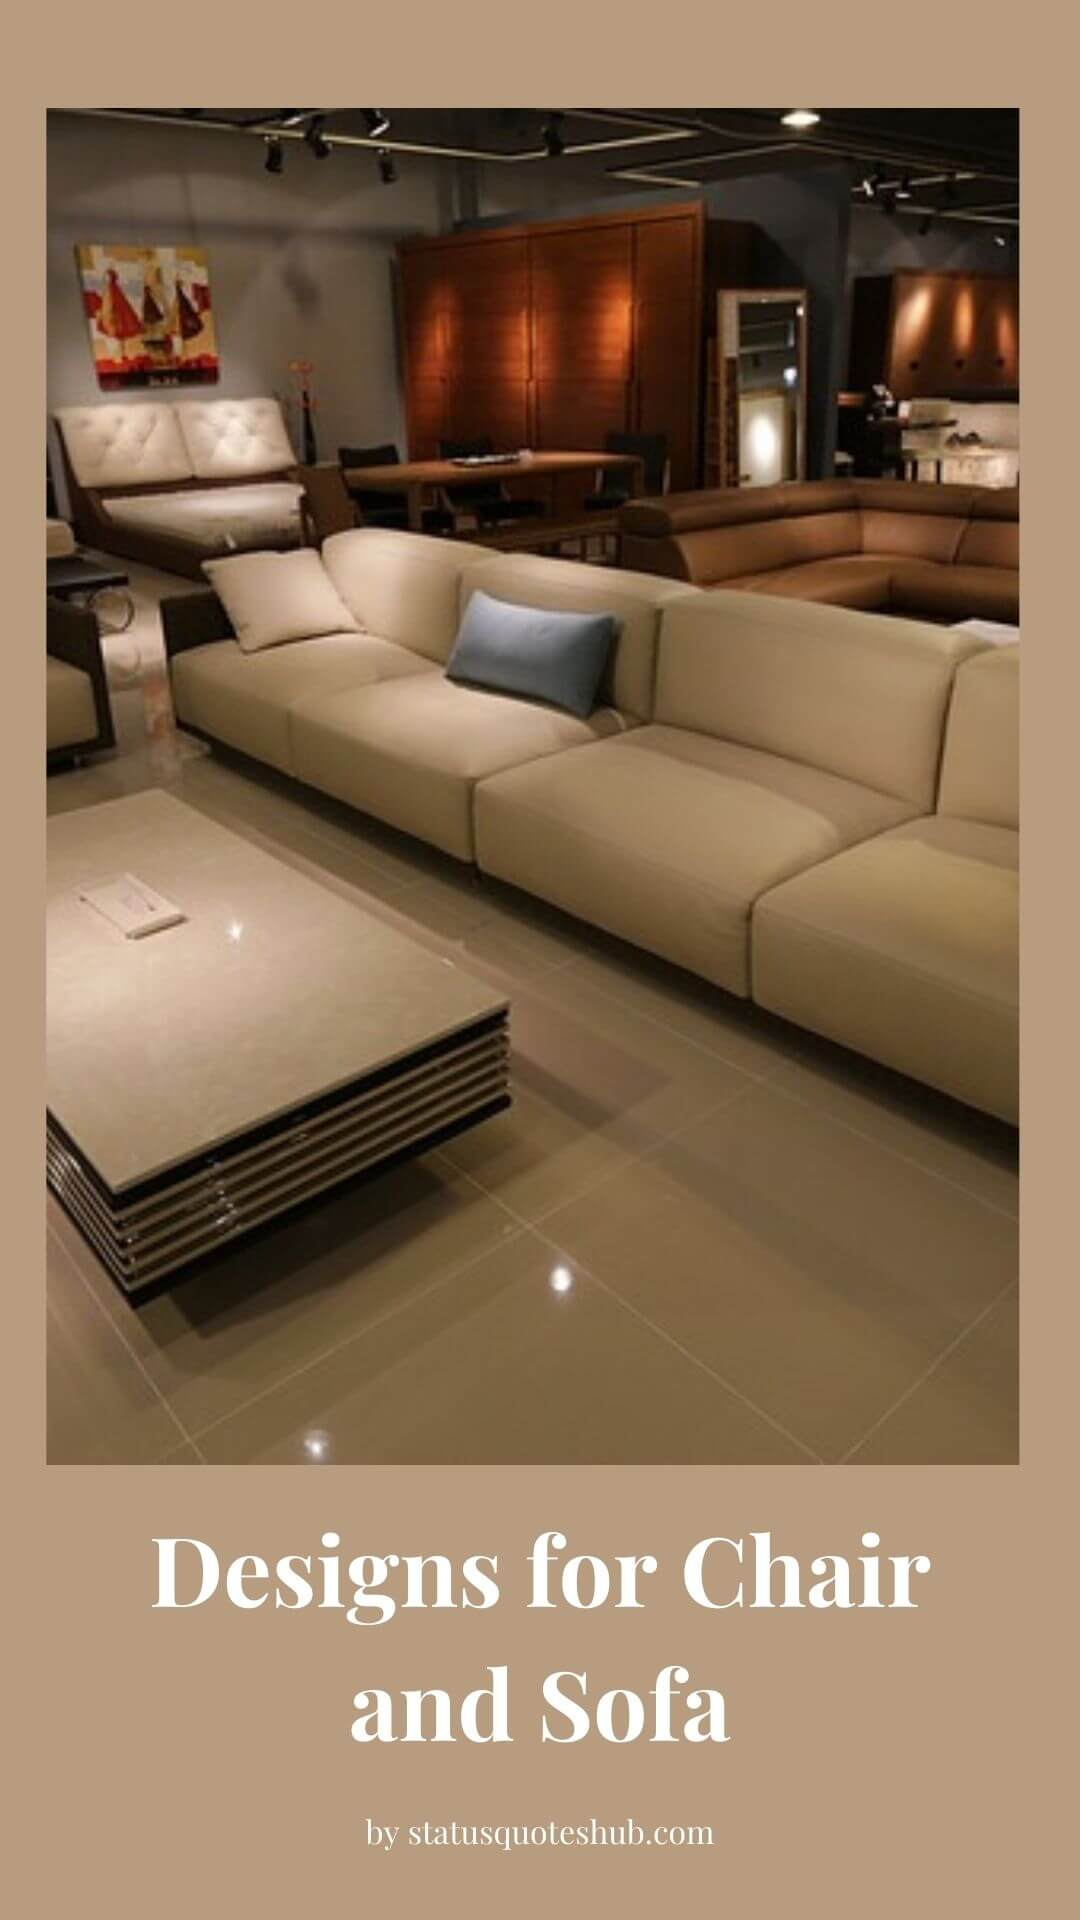 Designs for Chair and Sofa